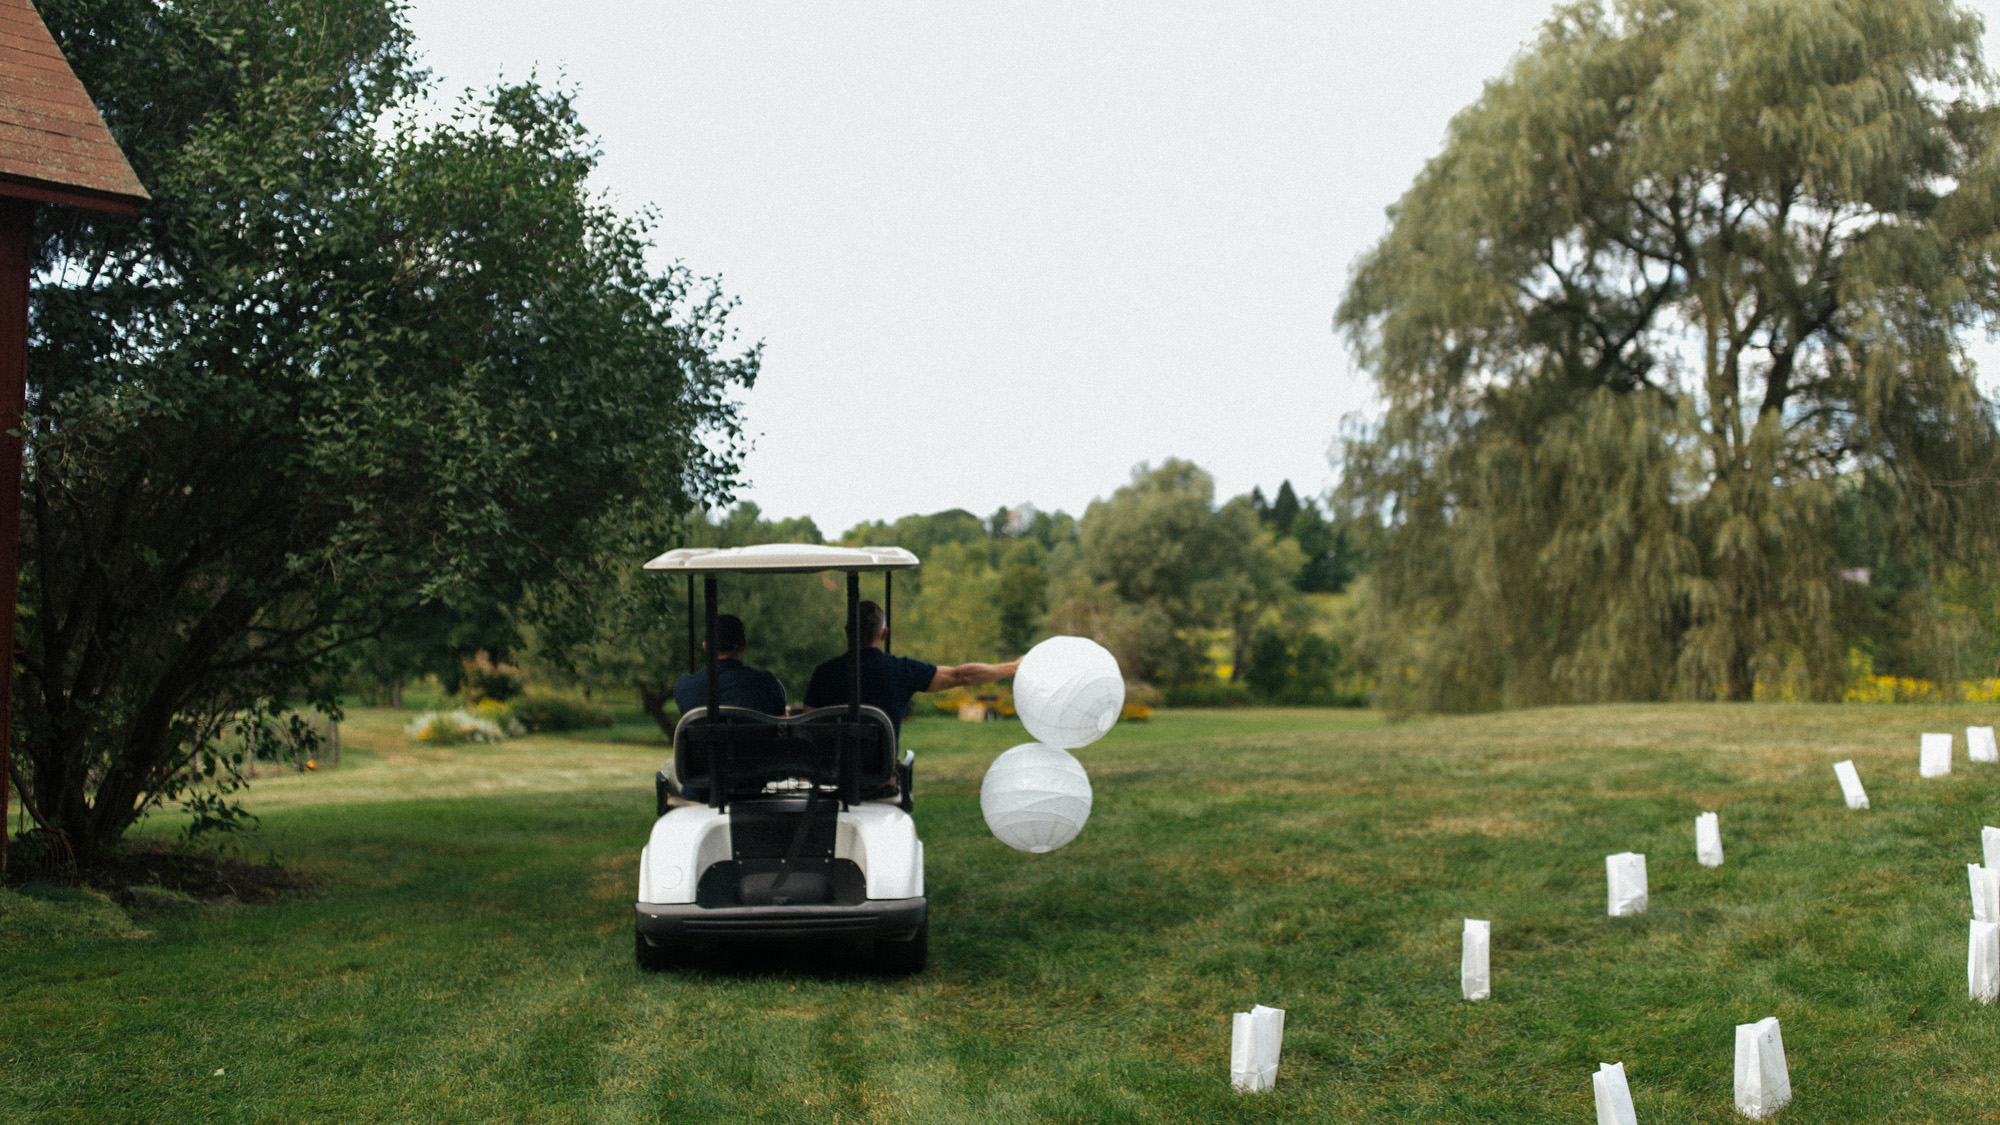 upstate_new_york_wedding_alec_vanderboom-0038.jpg